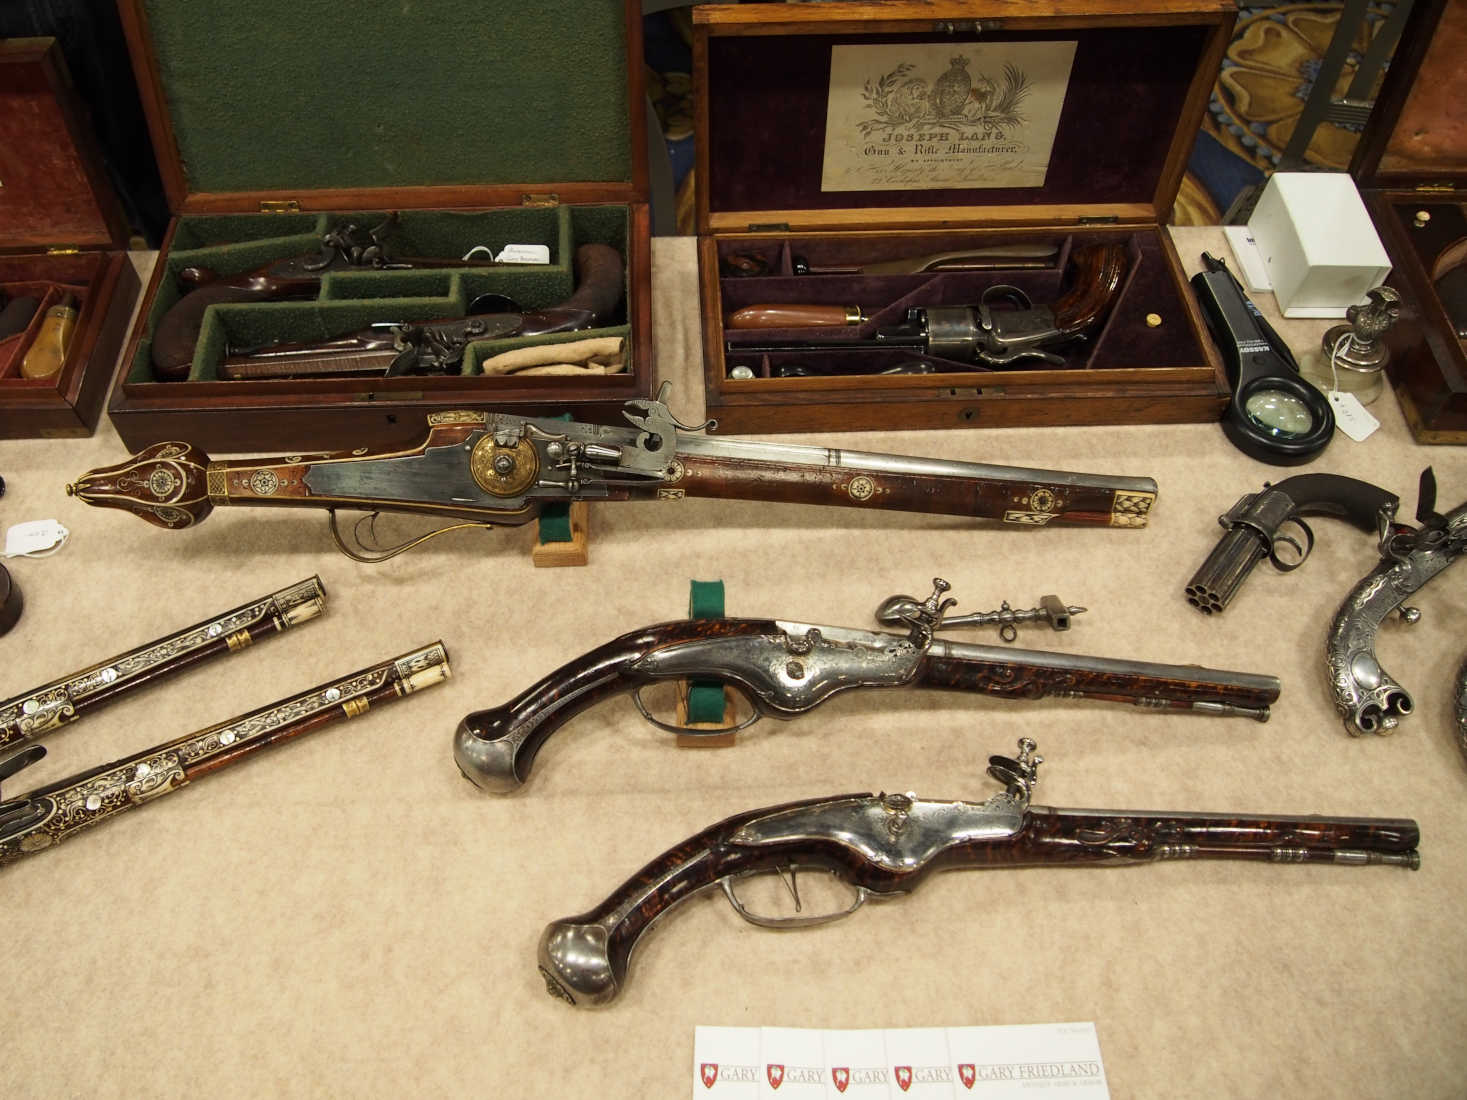 Report from the Other Vegas Gun Show: The Las Vegas Antique Arms Show